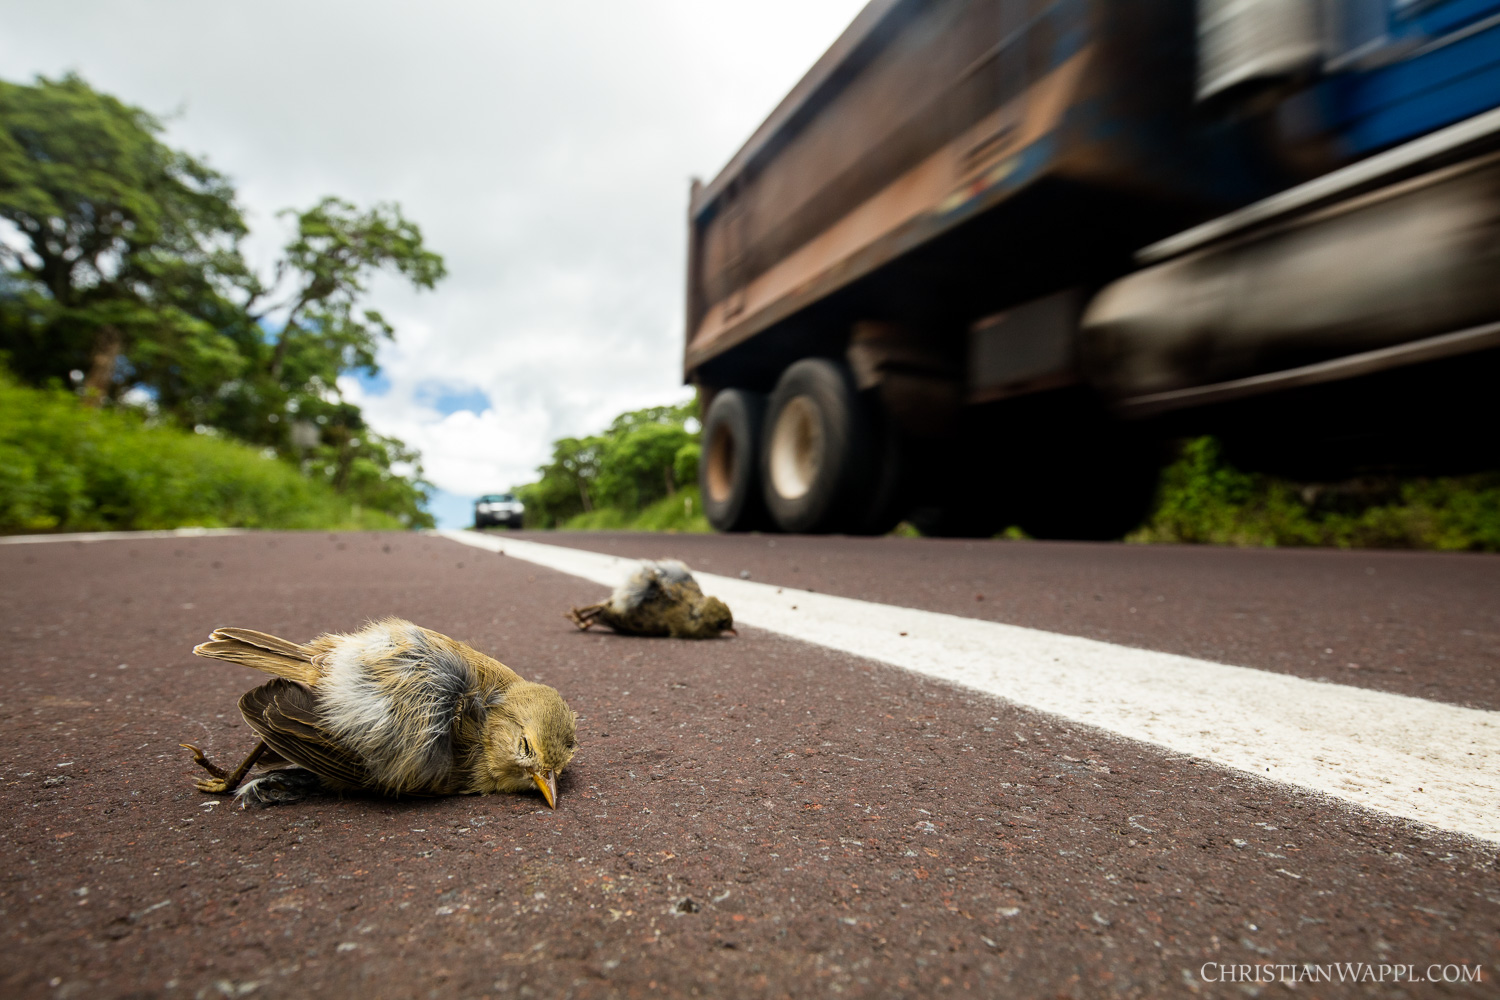 According to estimates by the Galápagos National Park, daily 50 to 60 birds are killed on the highway that bisects the island of Santa Cruz. It is not uncommon to see multiple birds or even whole families lying dead on the road.